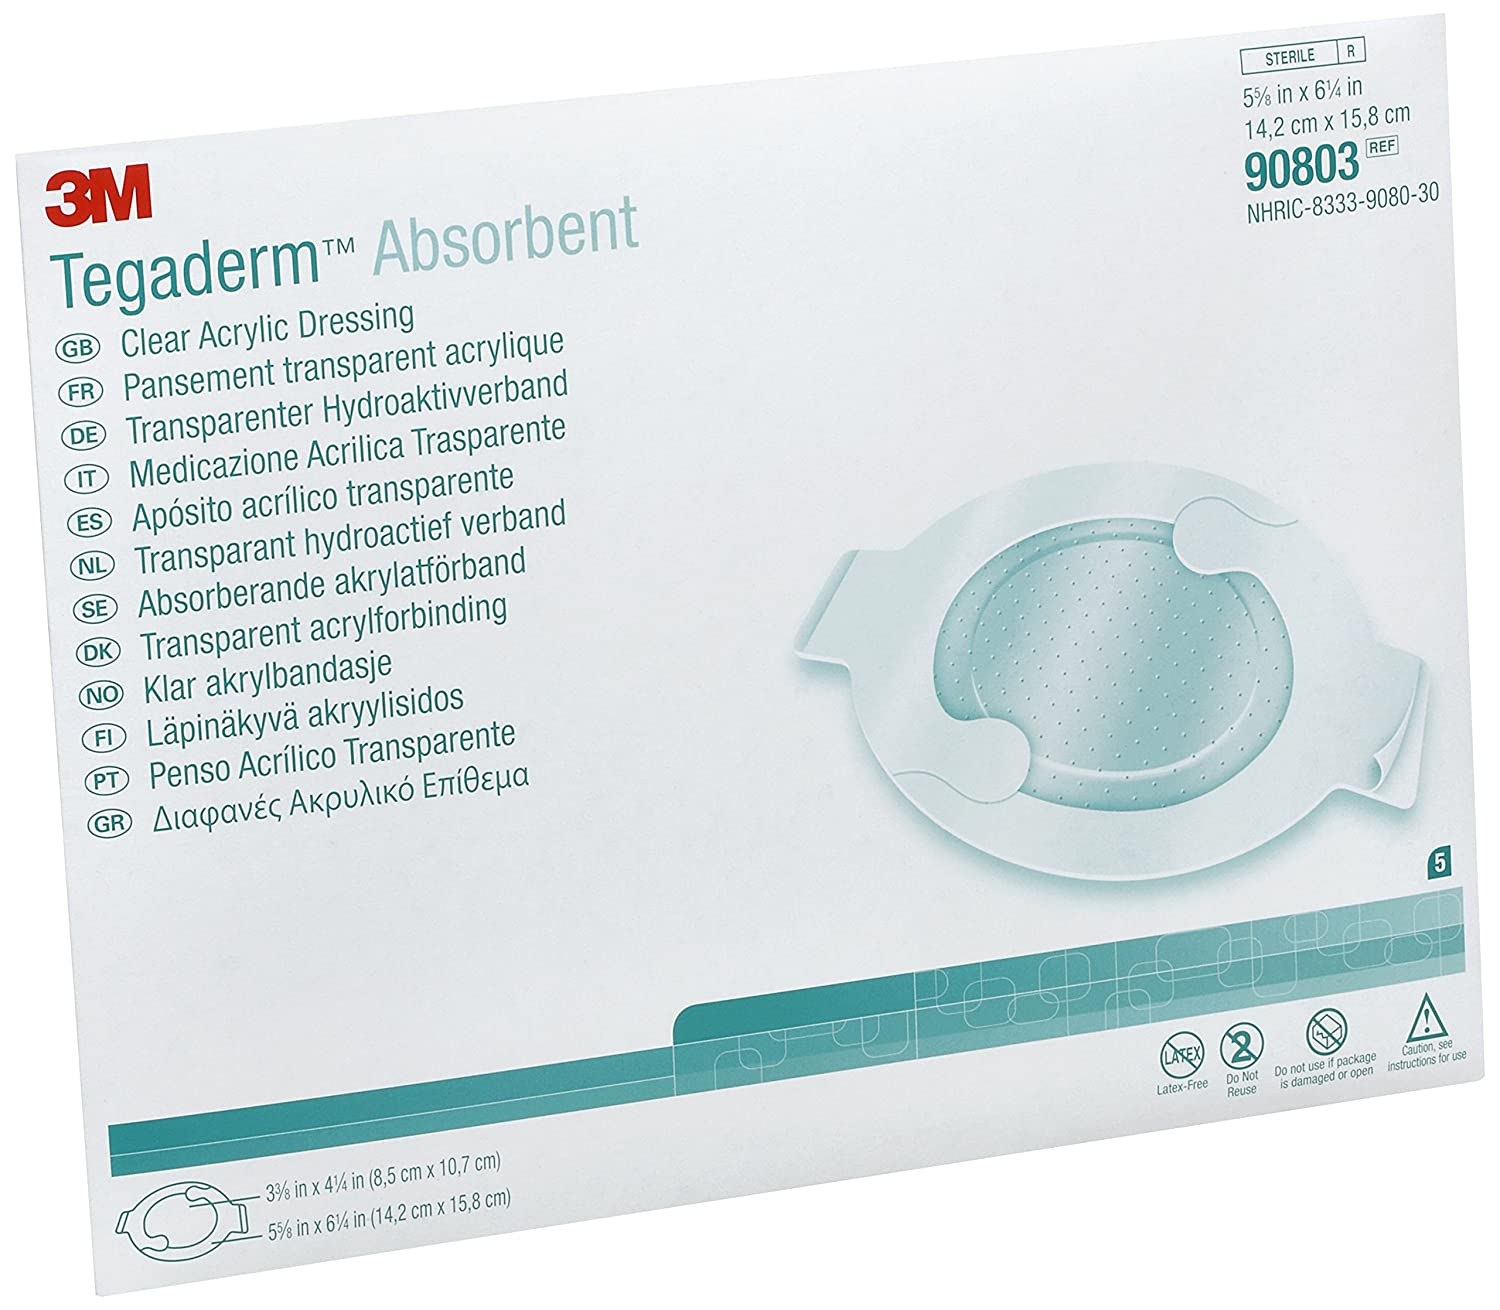 Image of 3M 90803 Tegaderm Absorbent Clear Acrylic Dressing, Large, Oval (Pack of 30) First Aid Tape